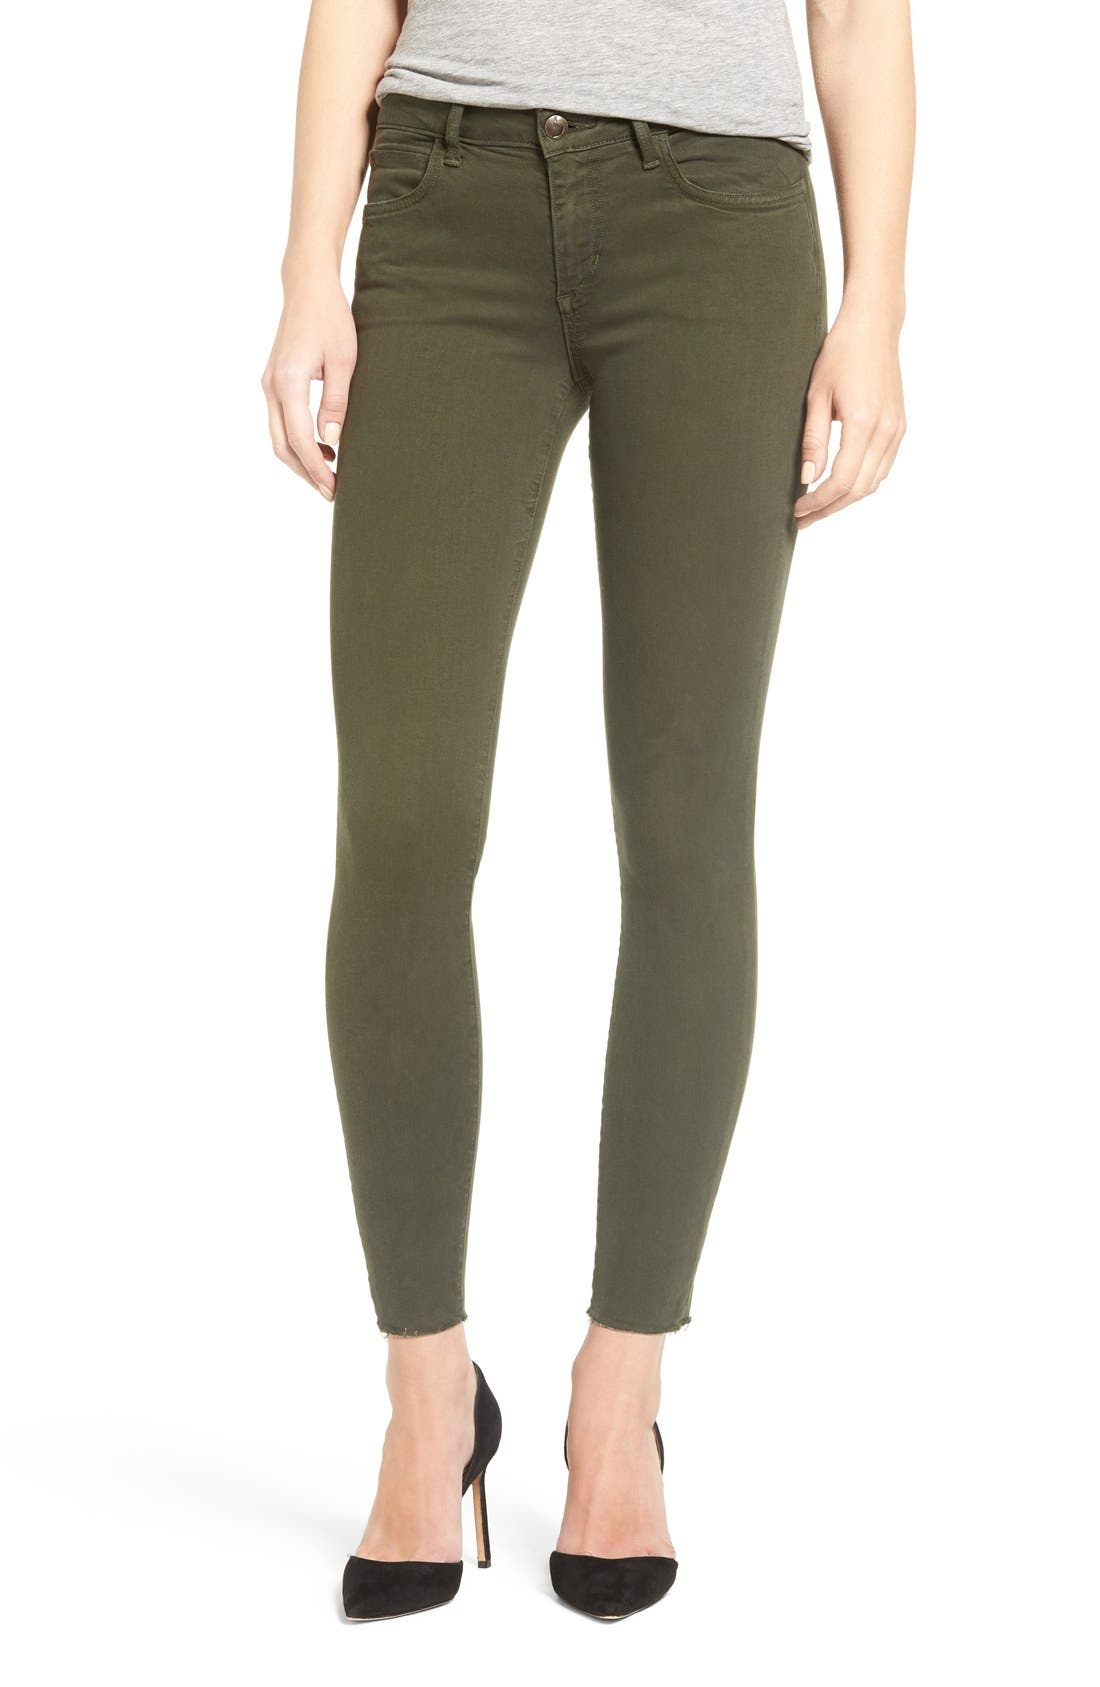 Icon Ankle Skinny Jeans,                             Alternate thumbnail 5, color,                             Military Green